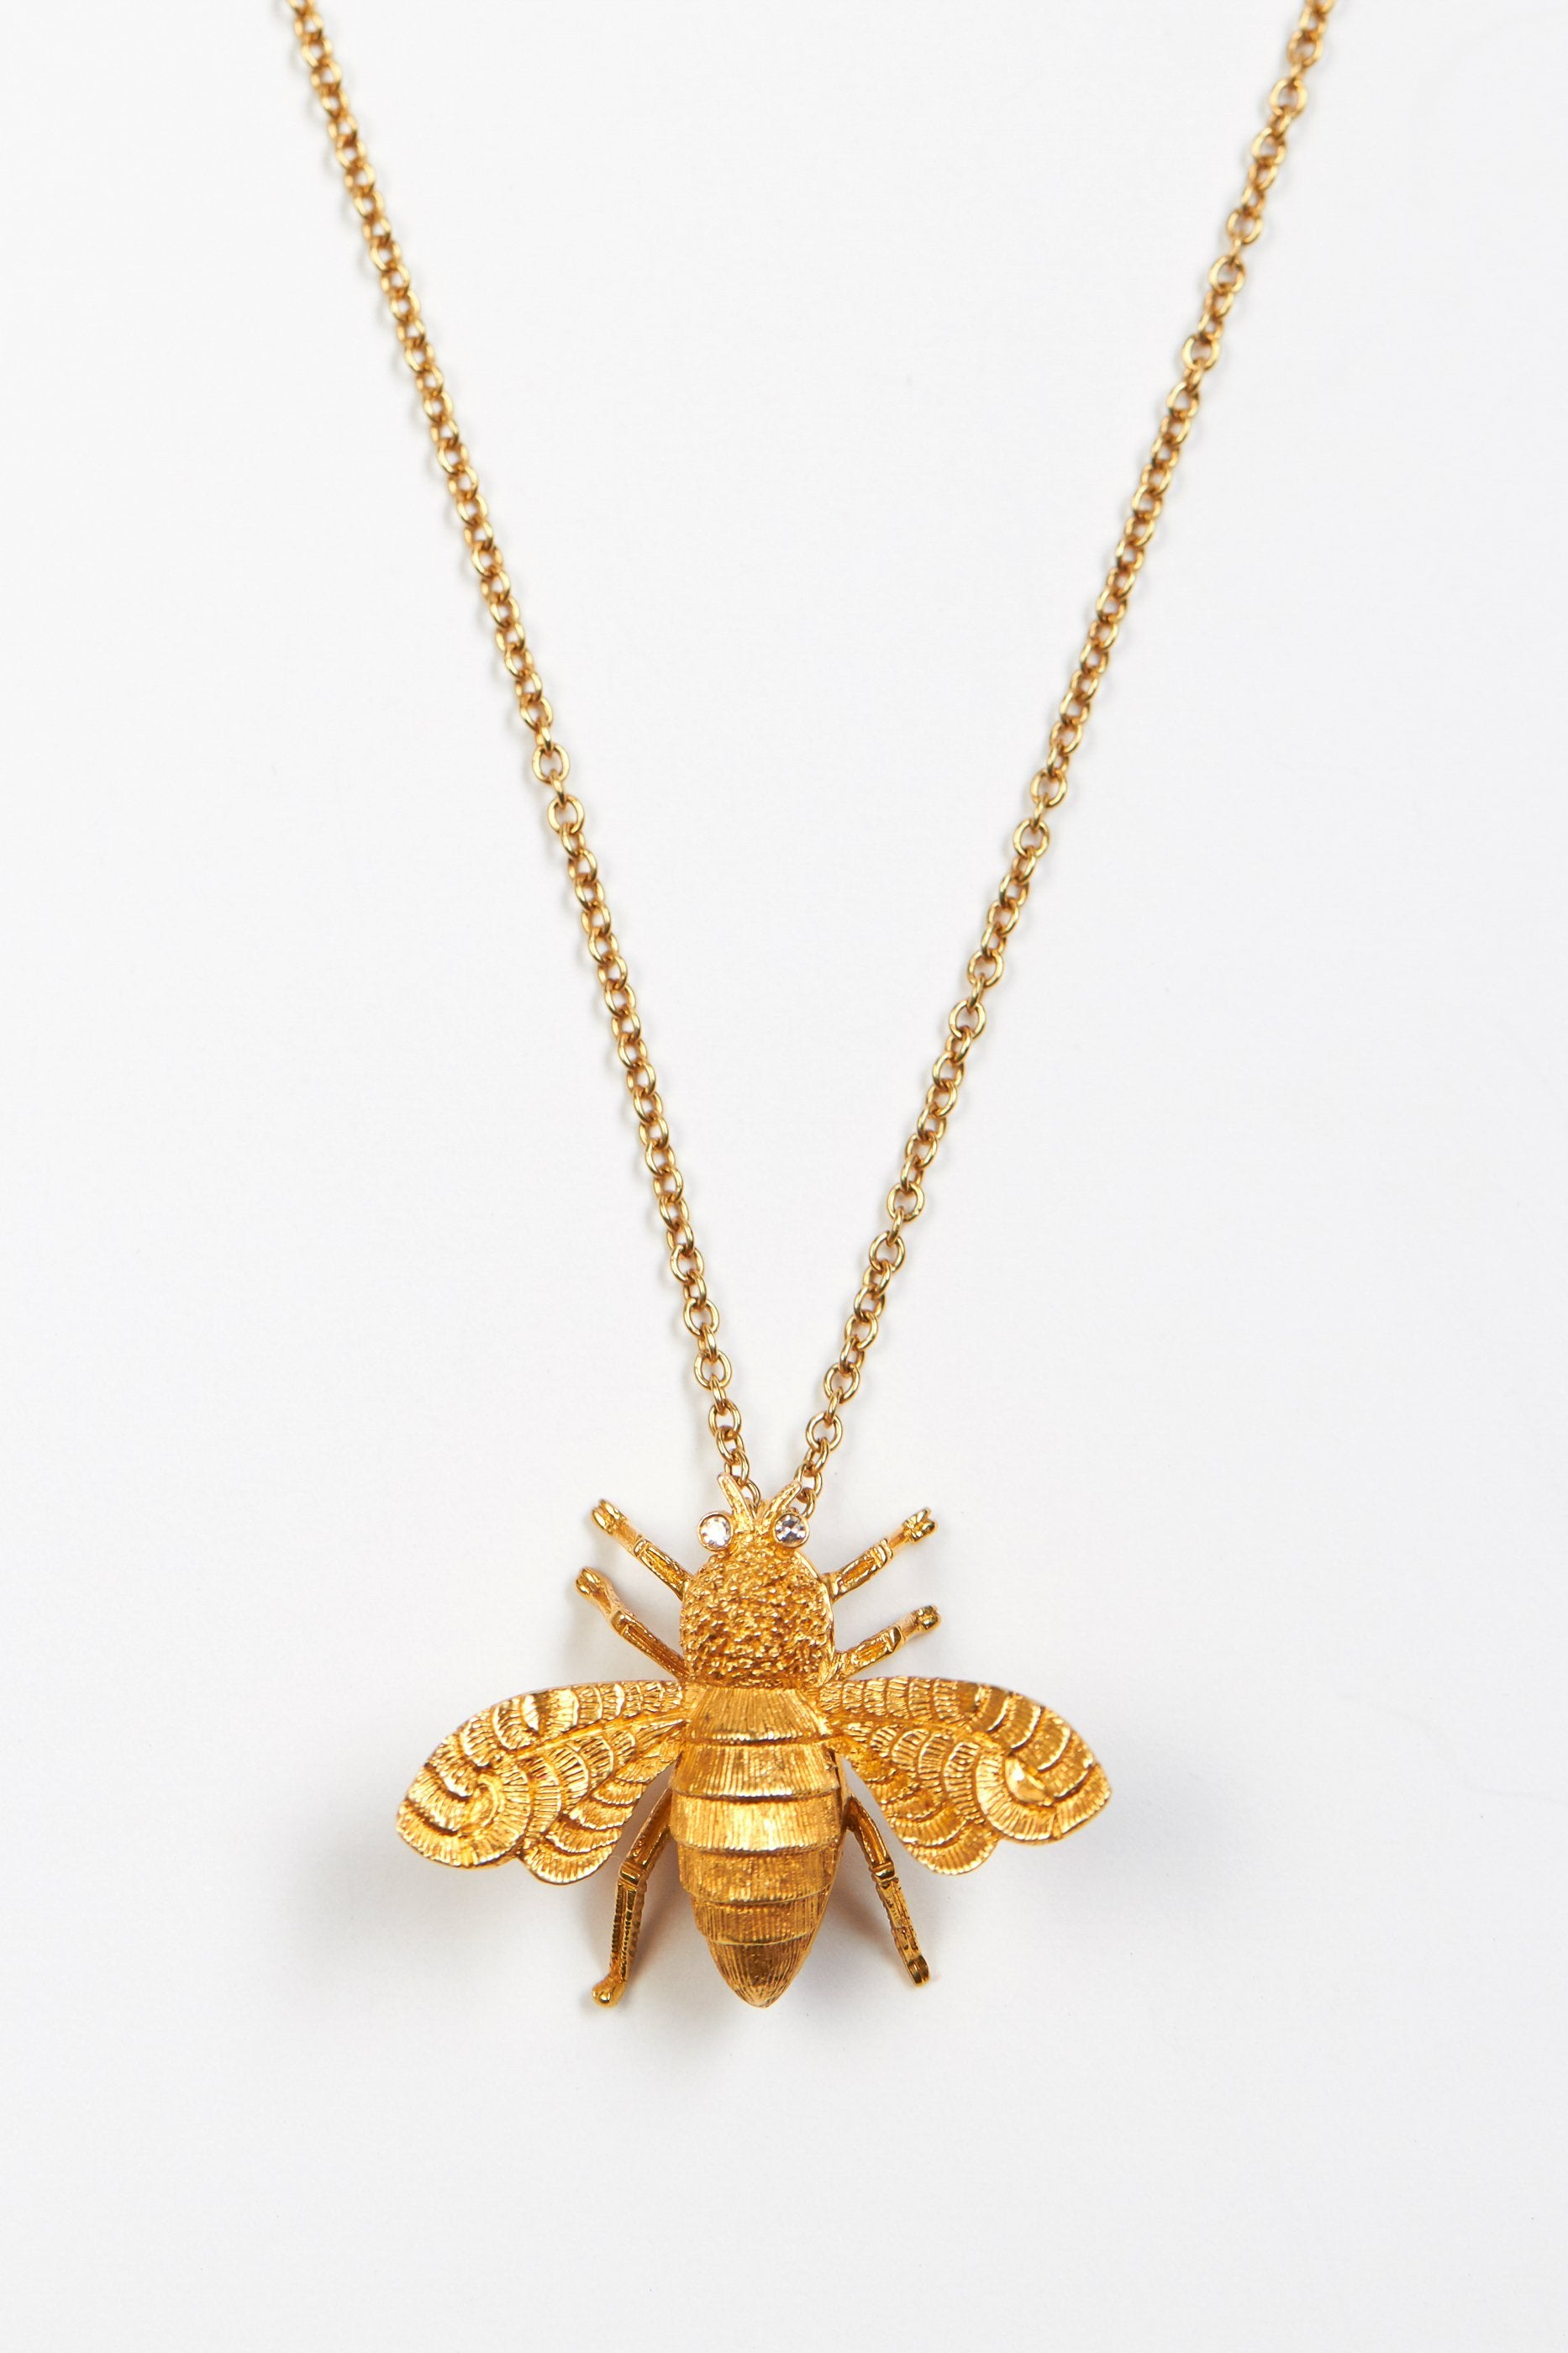 dhpo zoom necklace insect pendant il listing fullxfull honey bumble uk jewellery gold bee